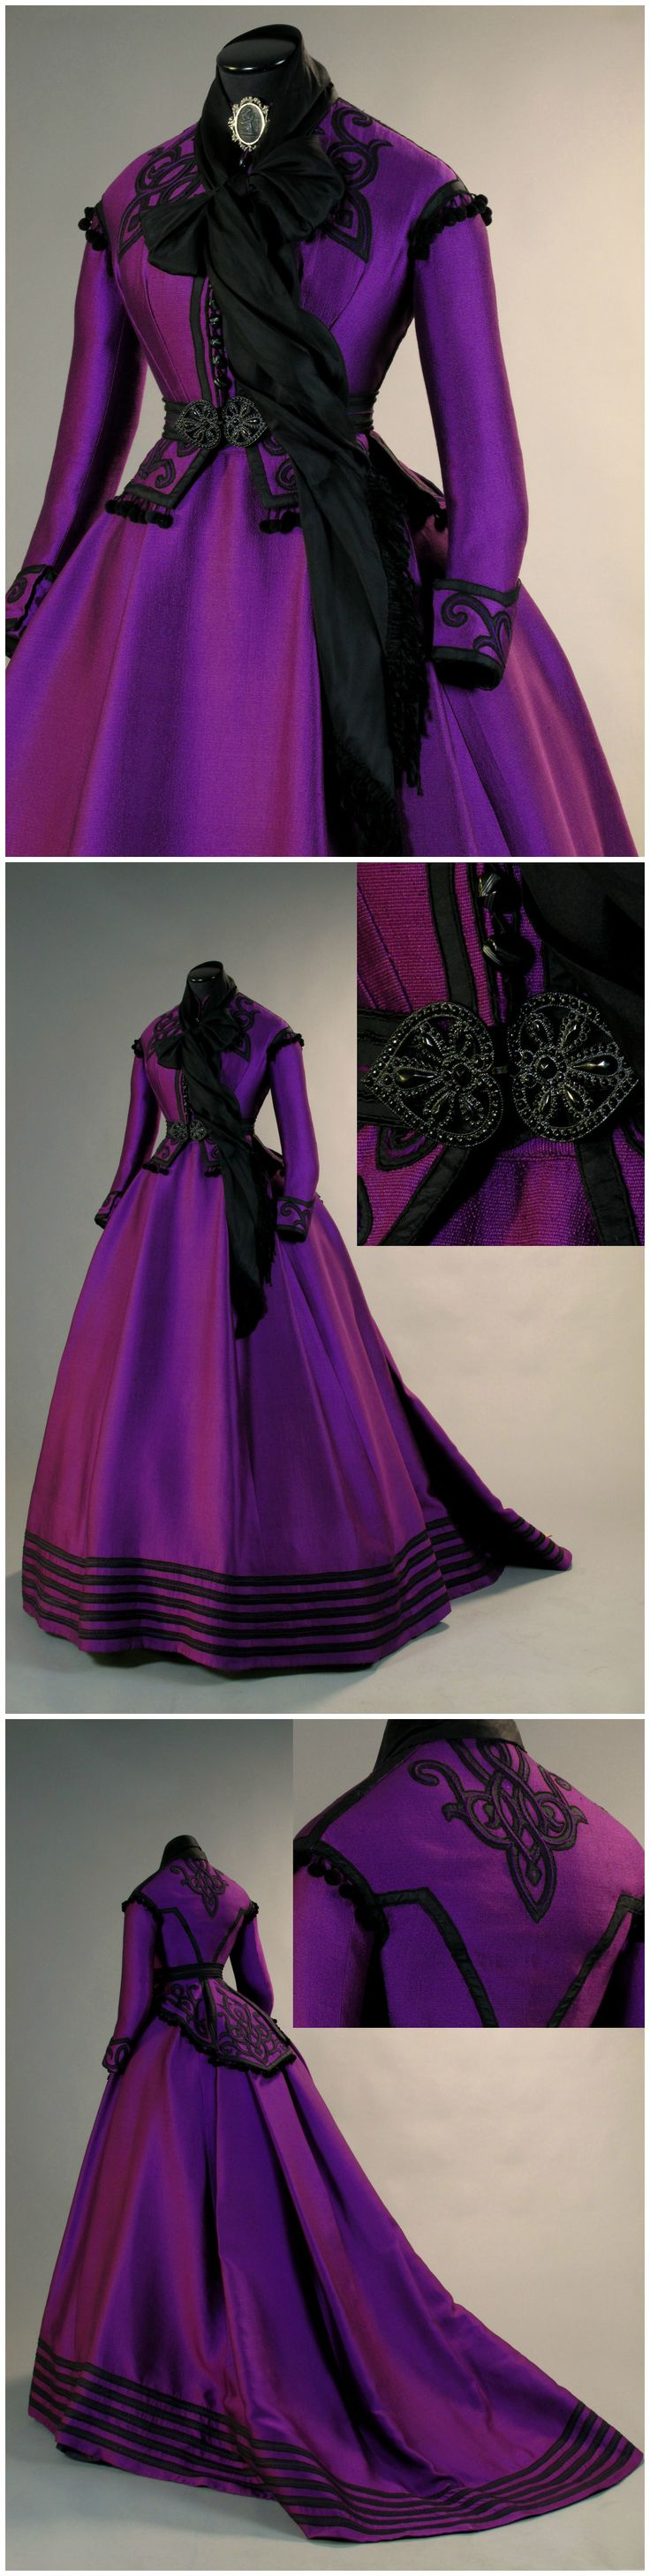 1860s-style purple silk dress, worn by Romy Schneider in the role of Empress Elisabeth of Austria in the film Ludwig (1972). Designed by Piero Tosi for Sartoria Tirelli (link: http://tirellicostumi.com/it/abito_oscar/ludwig_163).